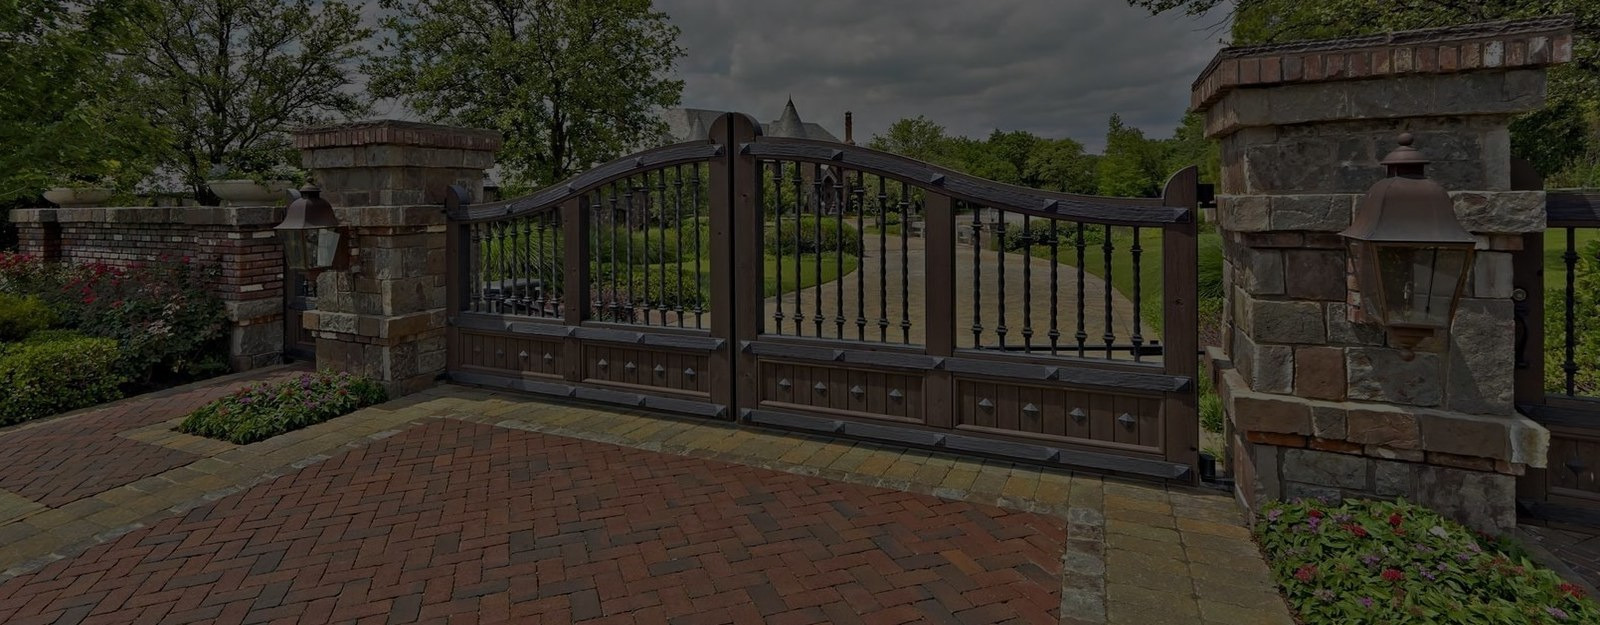 Automatic Gate Repair American Fork